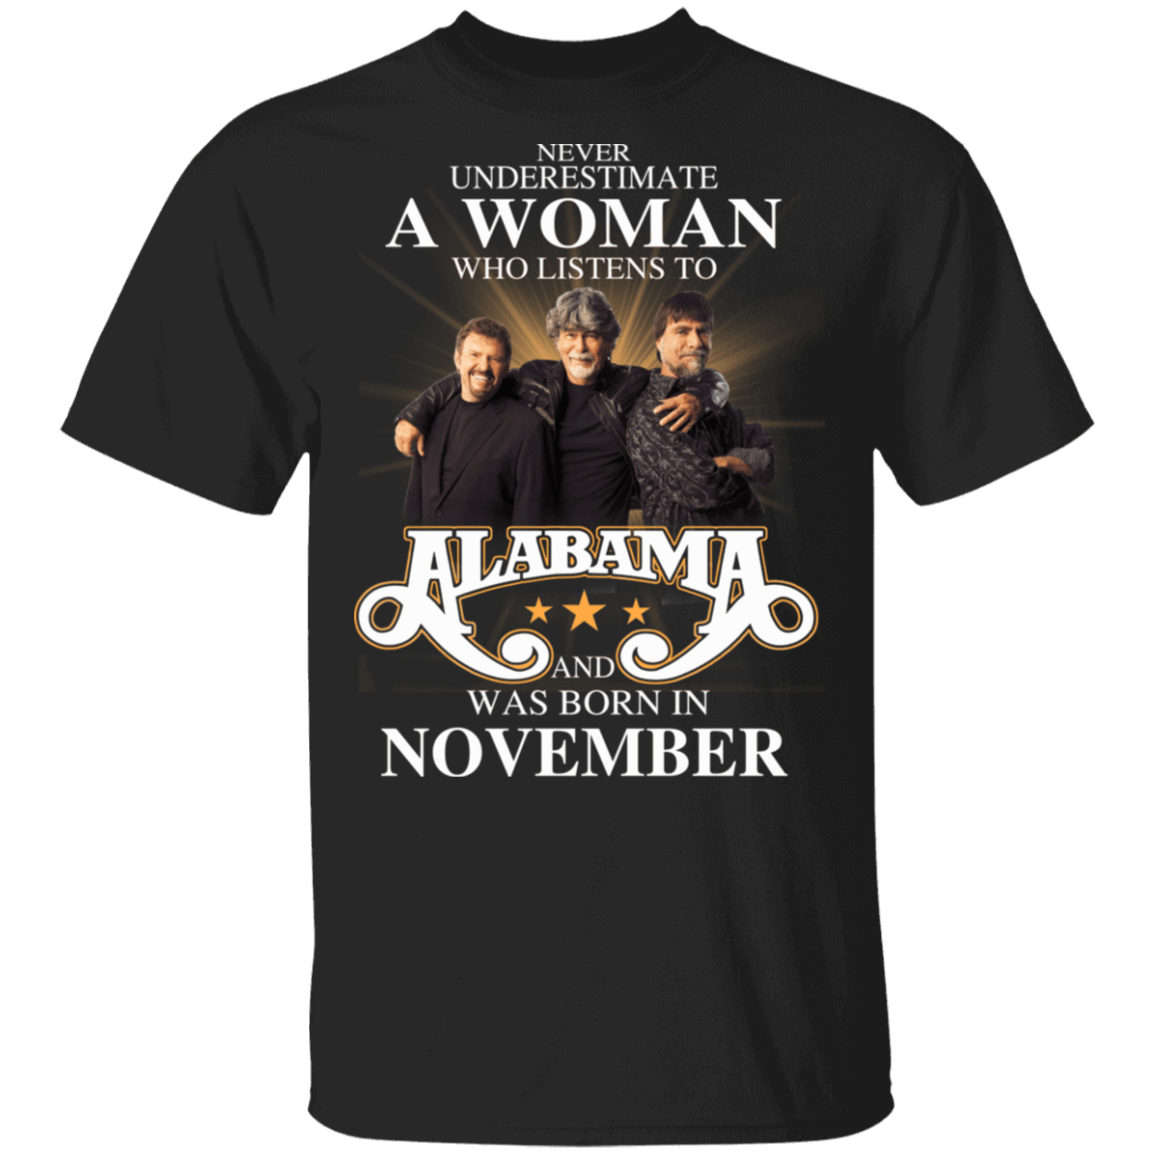 A Woman Who Listens To Alabama And Was Born In November T-Shirts, Hoodies, Tank 1049-9953-81138095-48144 - Tee Ript